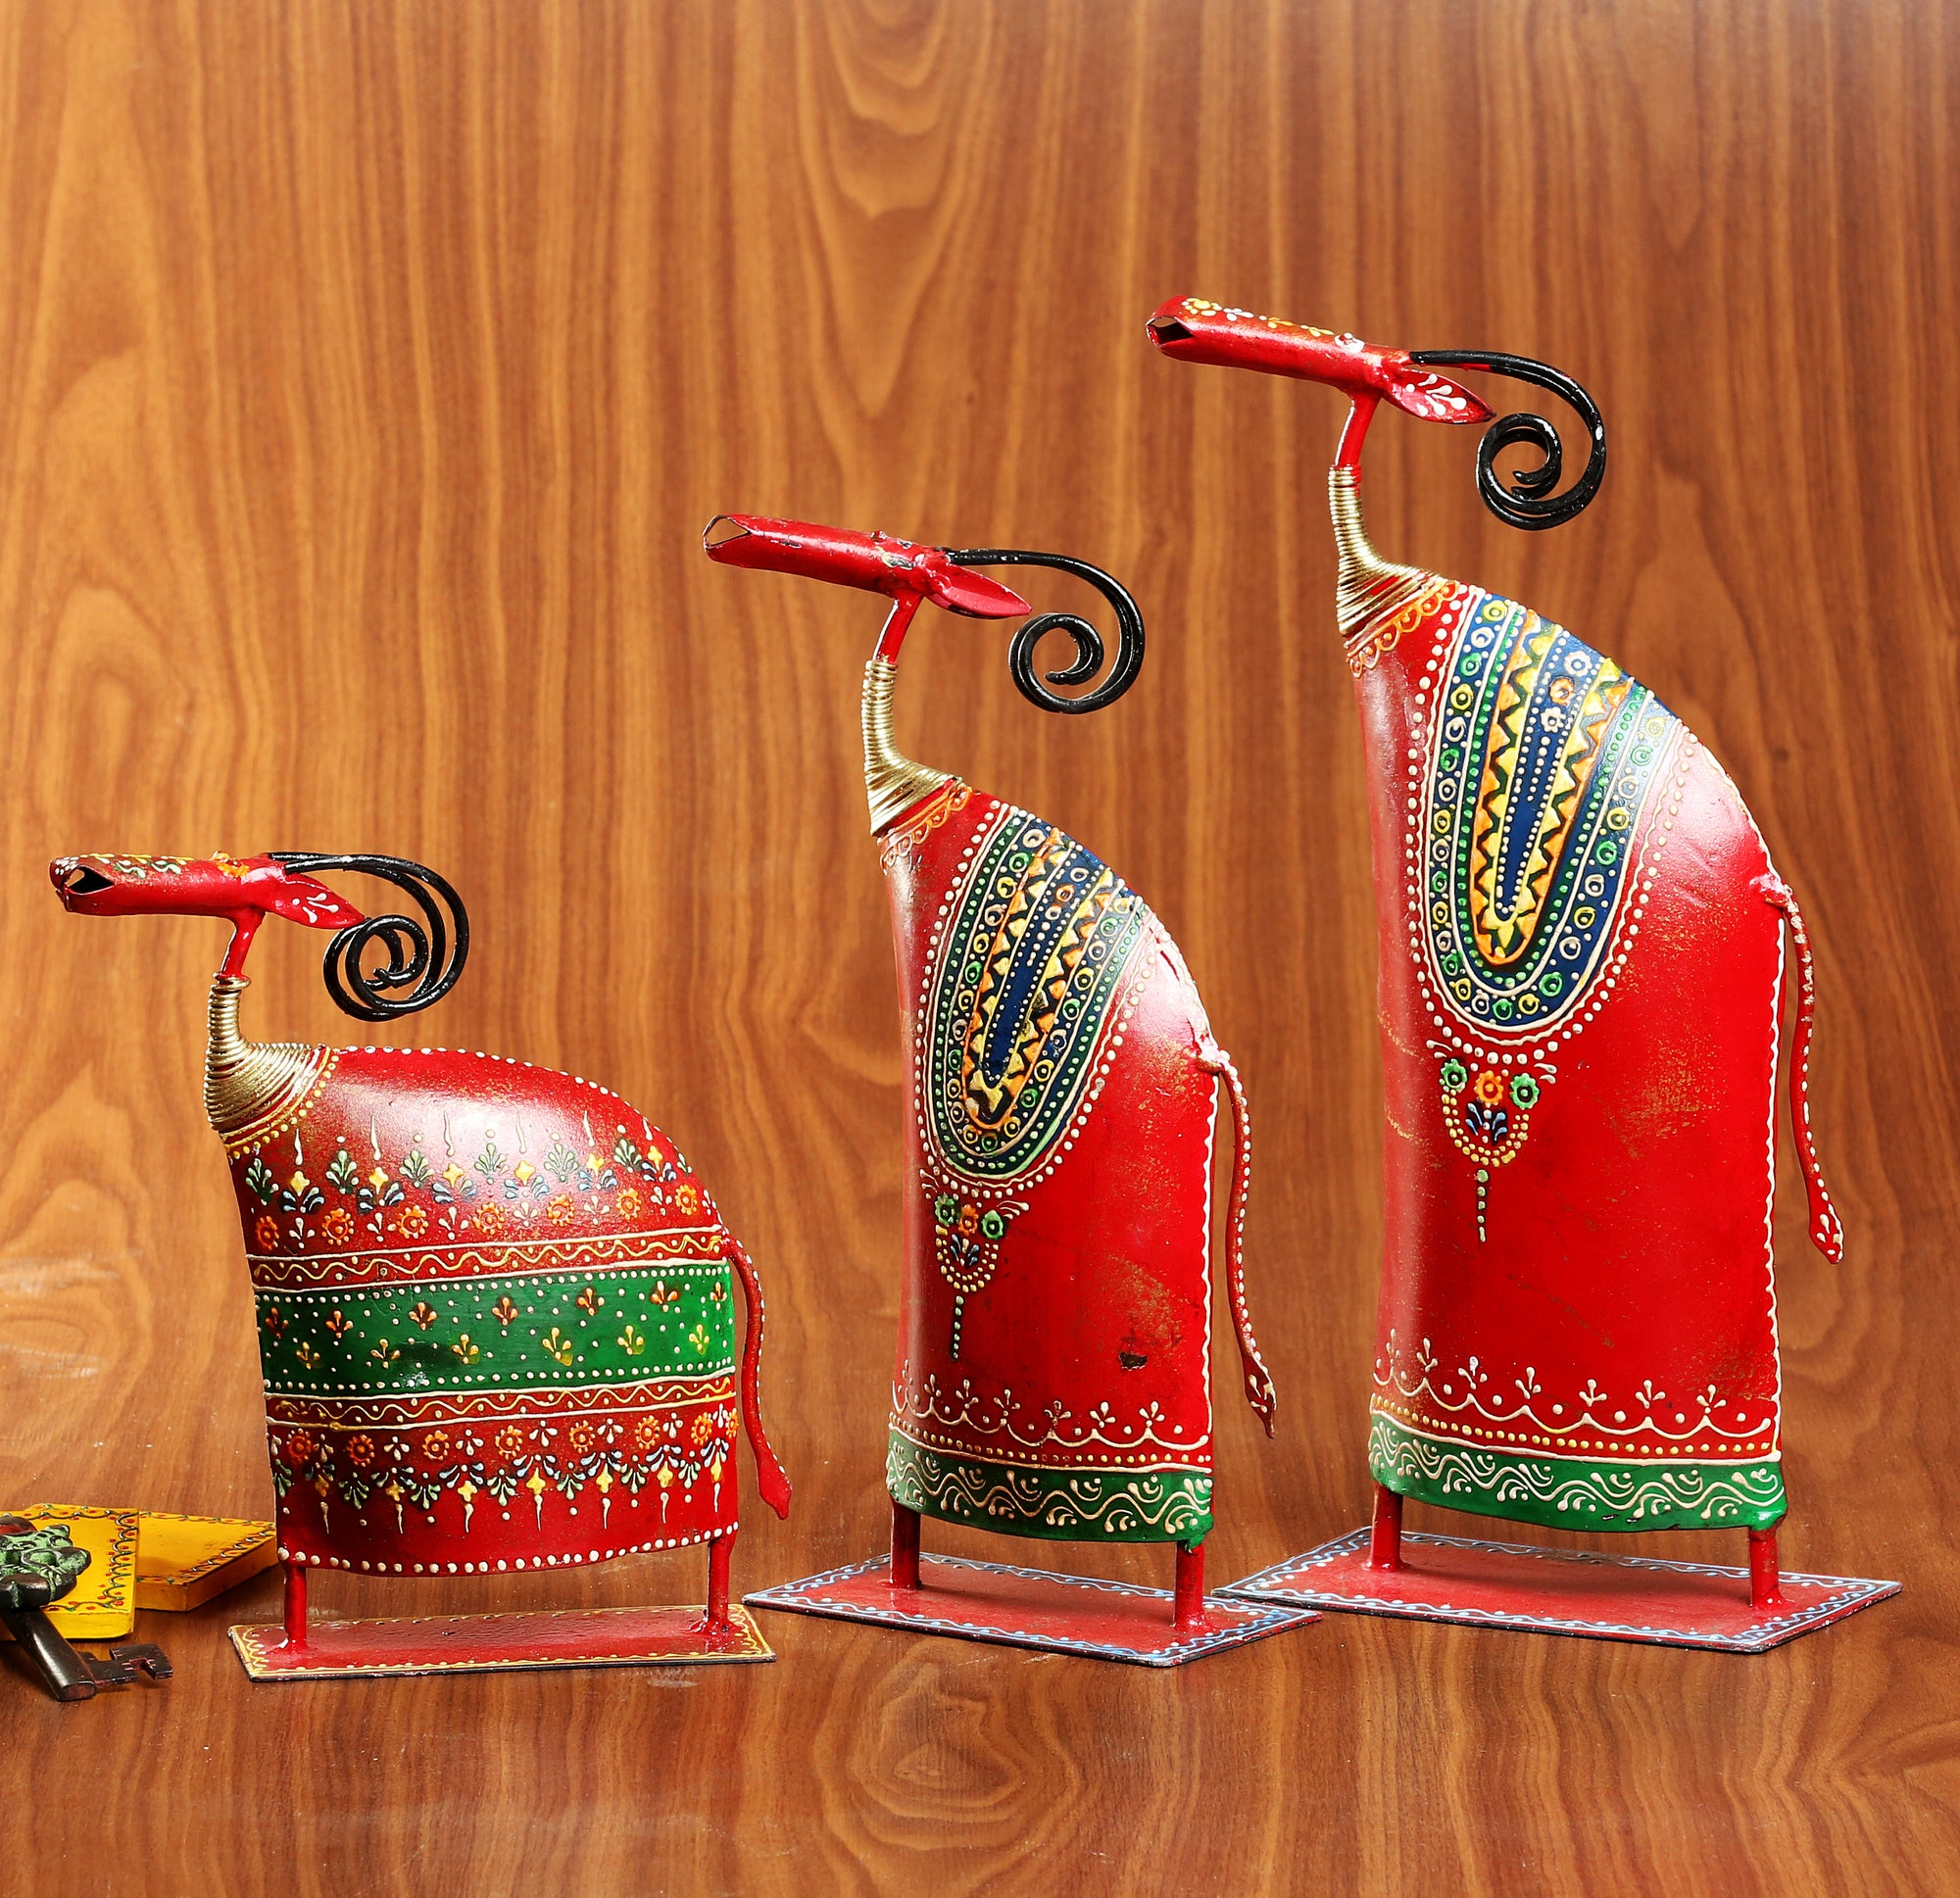 handpainted-metal-deers-figurines-hdf5749